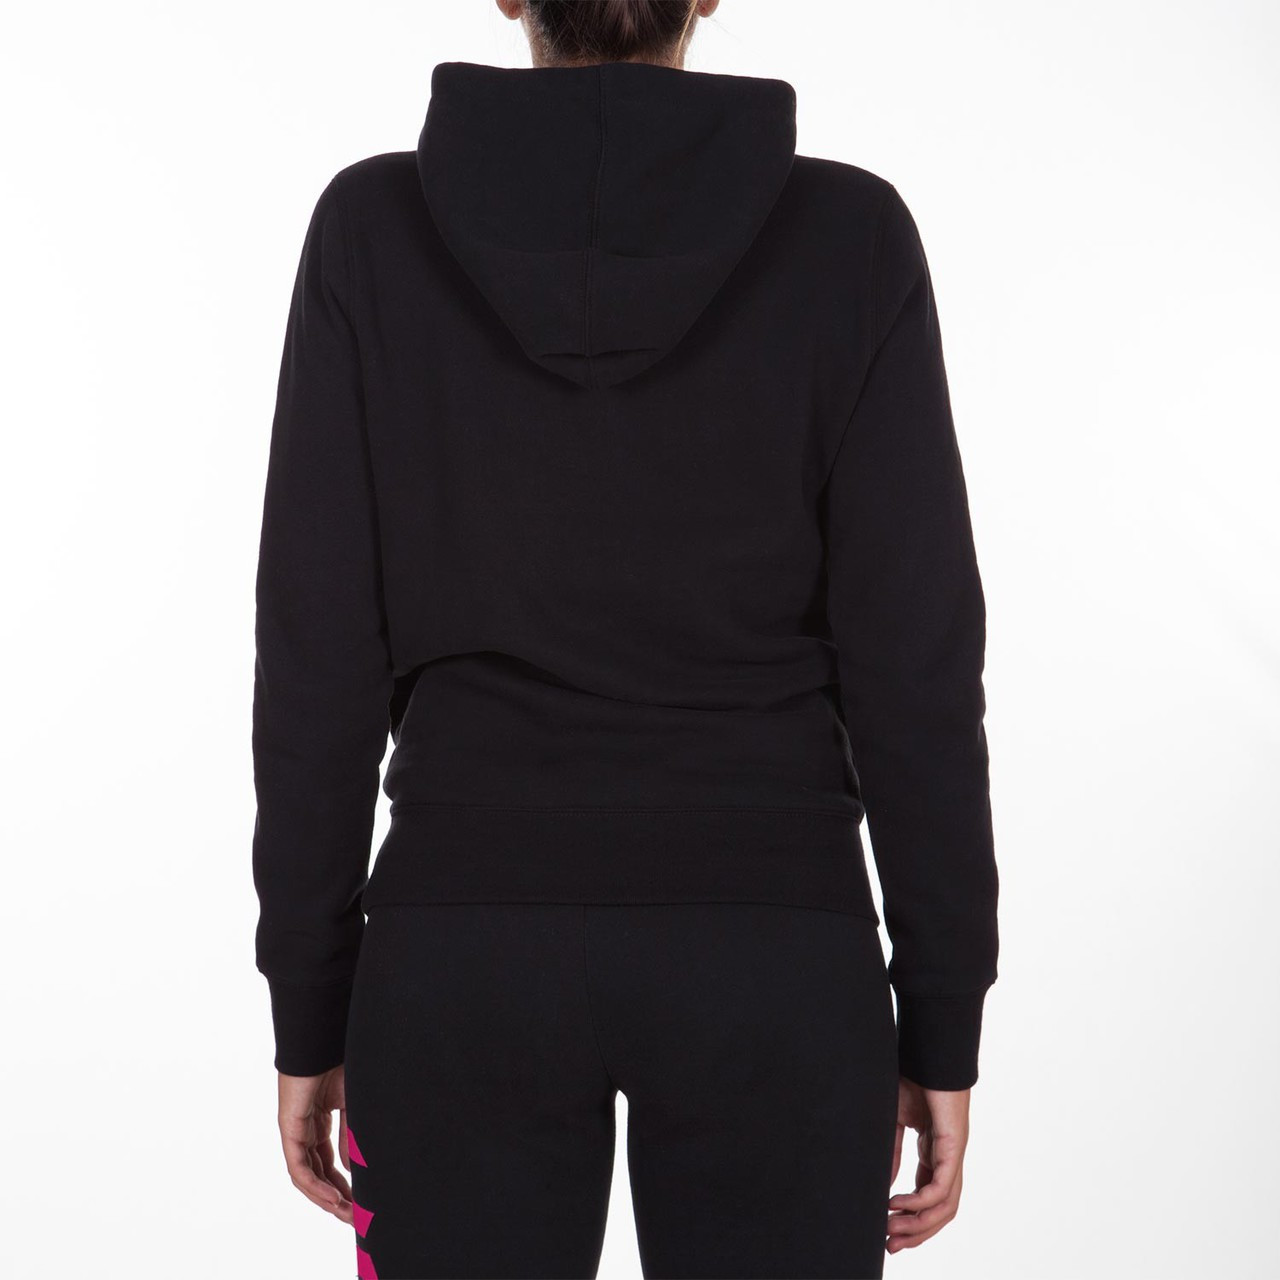 Back of the Venum Infinity Hoody - Black/Pink now available at www.thejiujitsushop.com  Free Shipping from The Jiu Jitsu Shop.